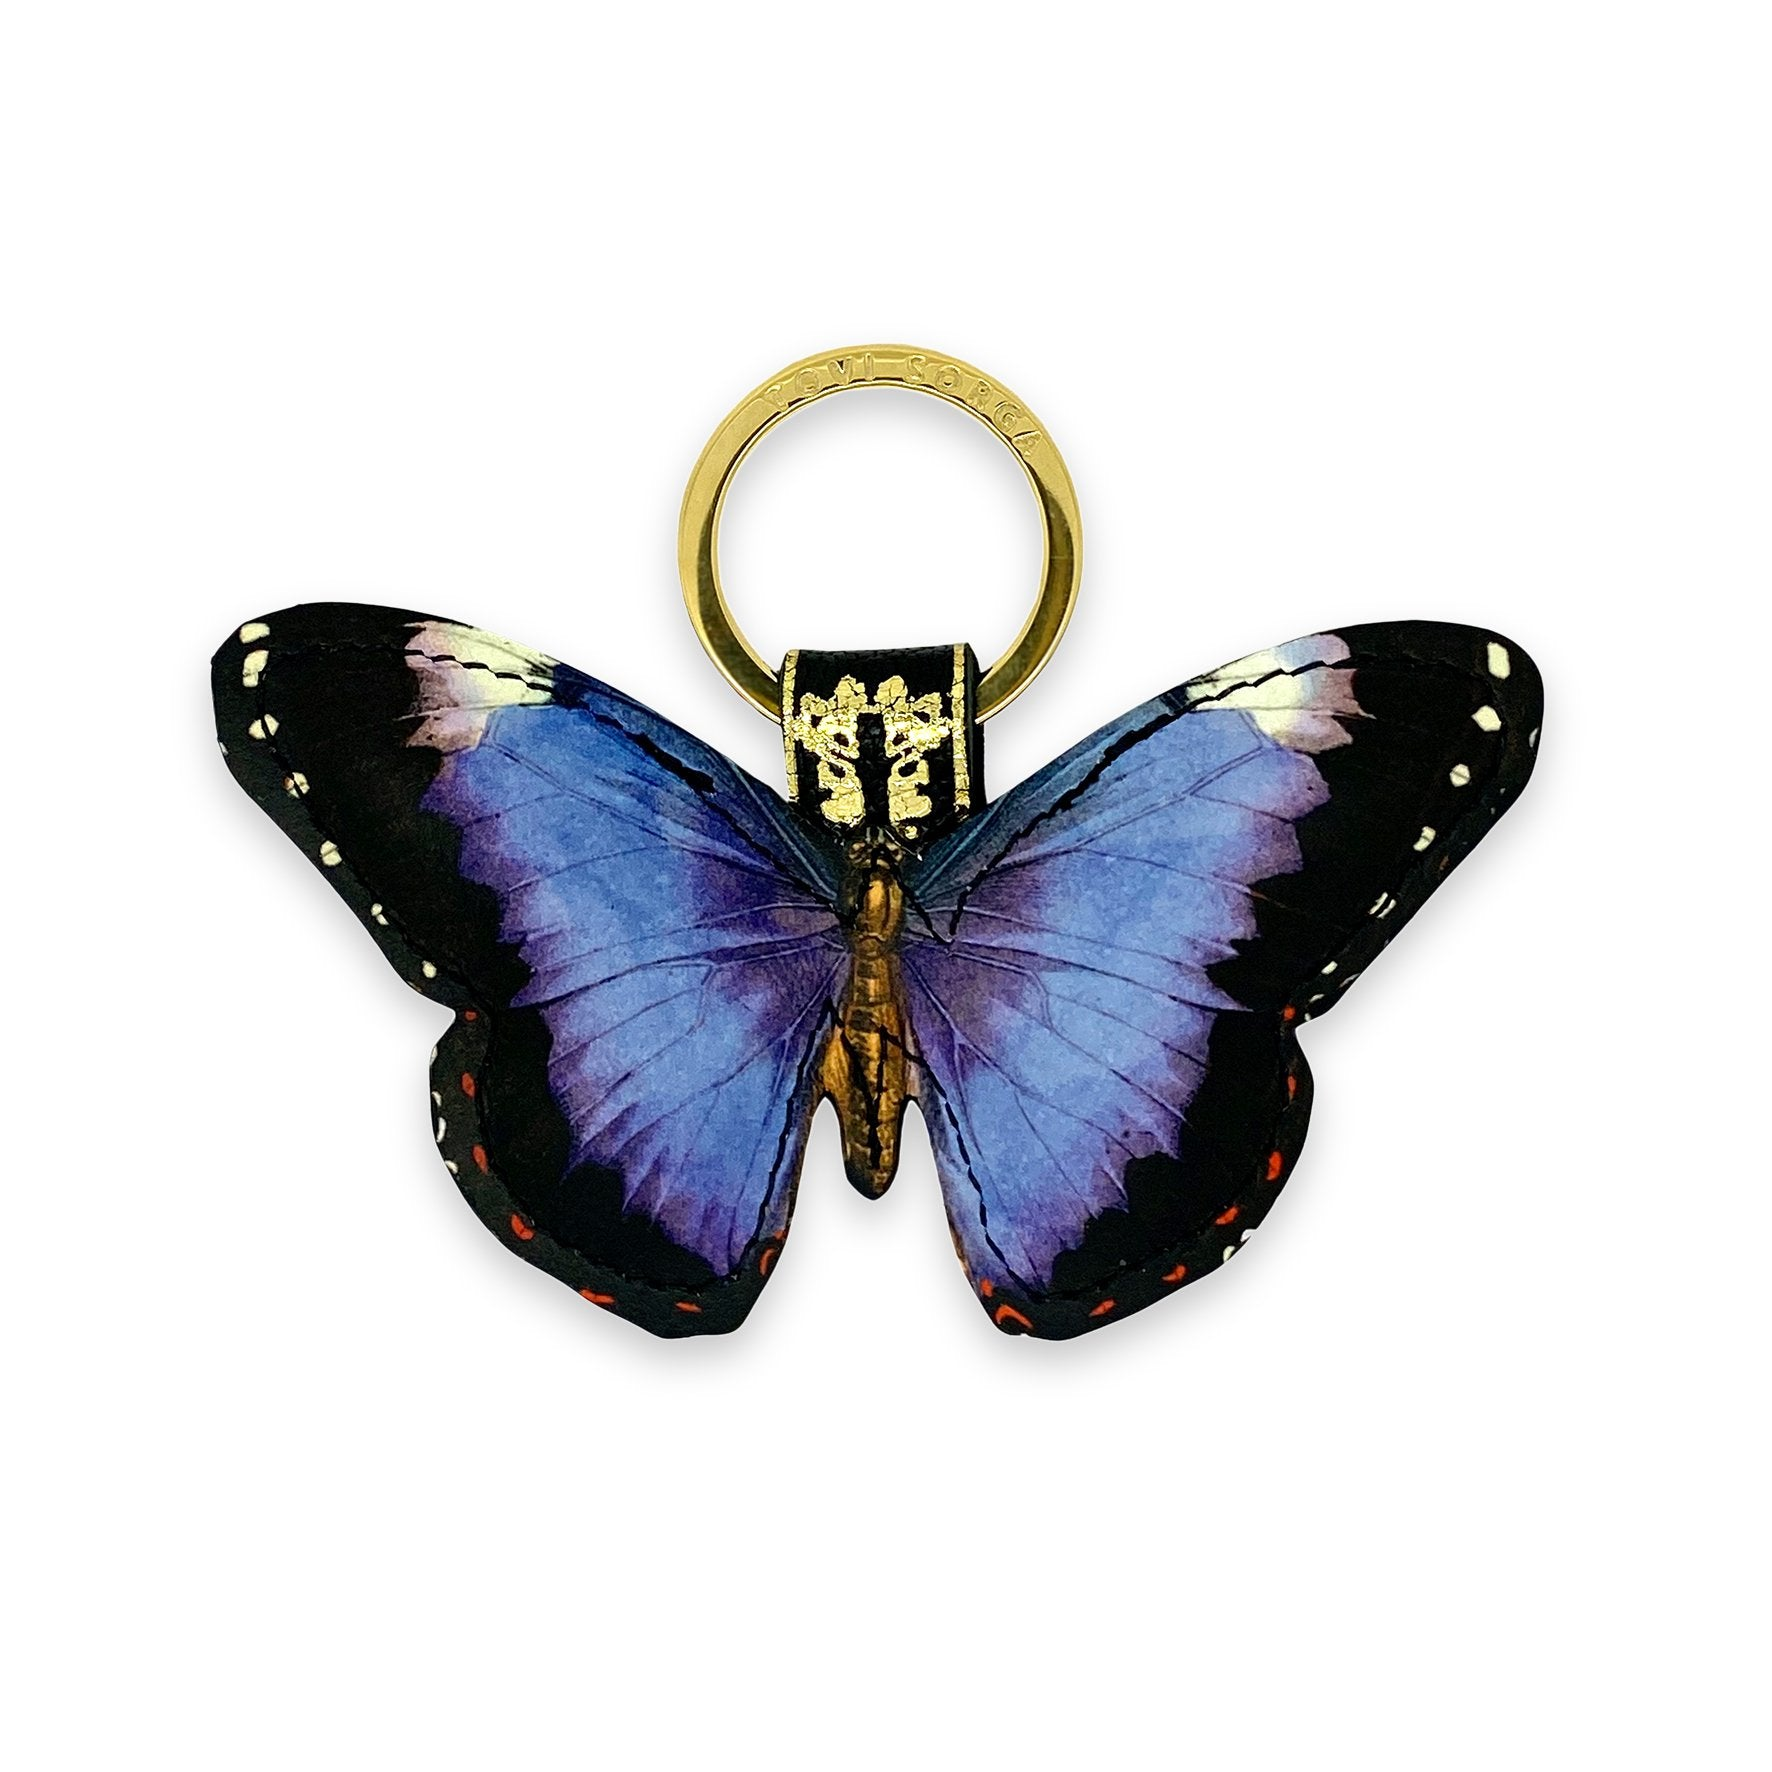 Leather Keyring / Bag Charm - Royal Purple Butterfly Key Ring / Bag Charm Tovi Sorga